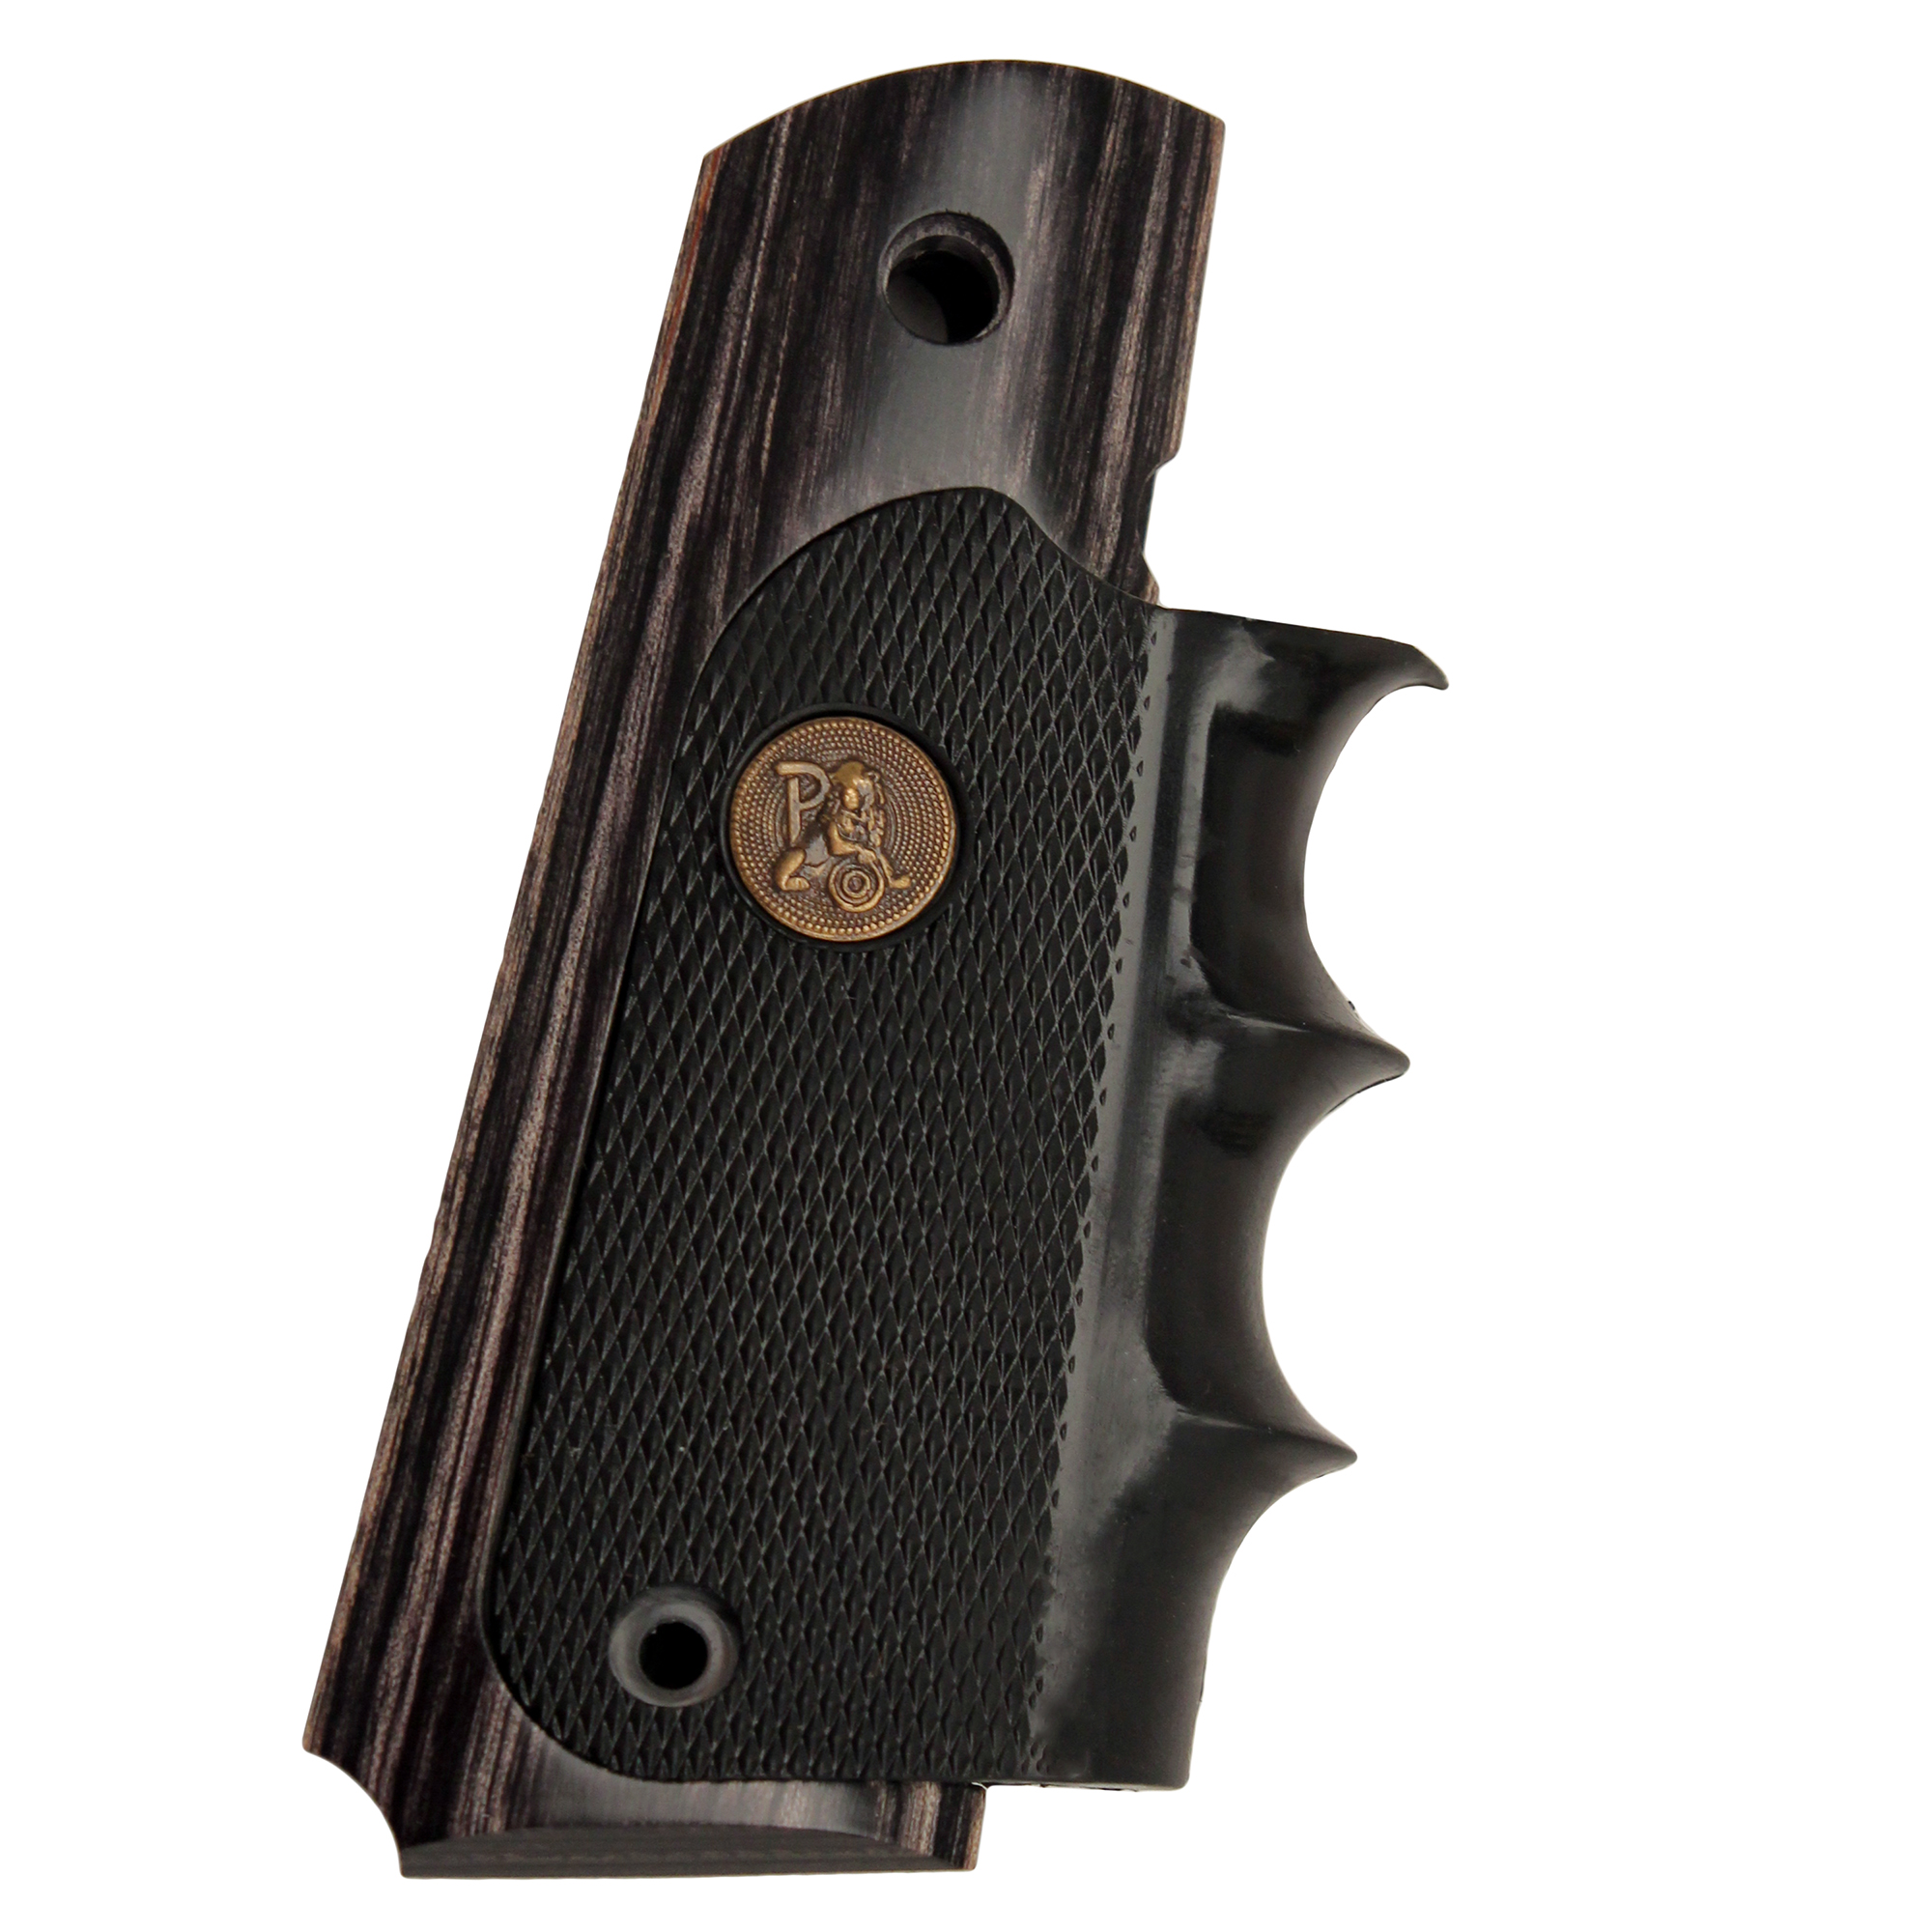 Pachmayr Colt 1911 Grip Charcoal Silvertone Laminate 00433